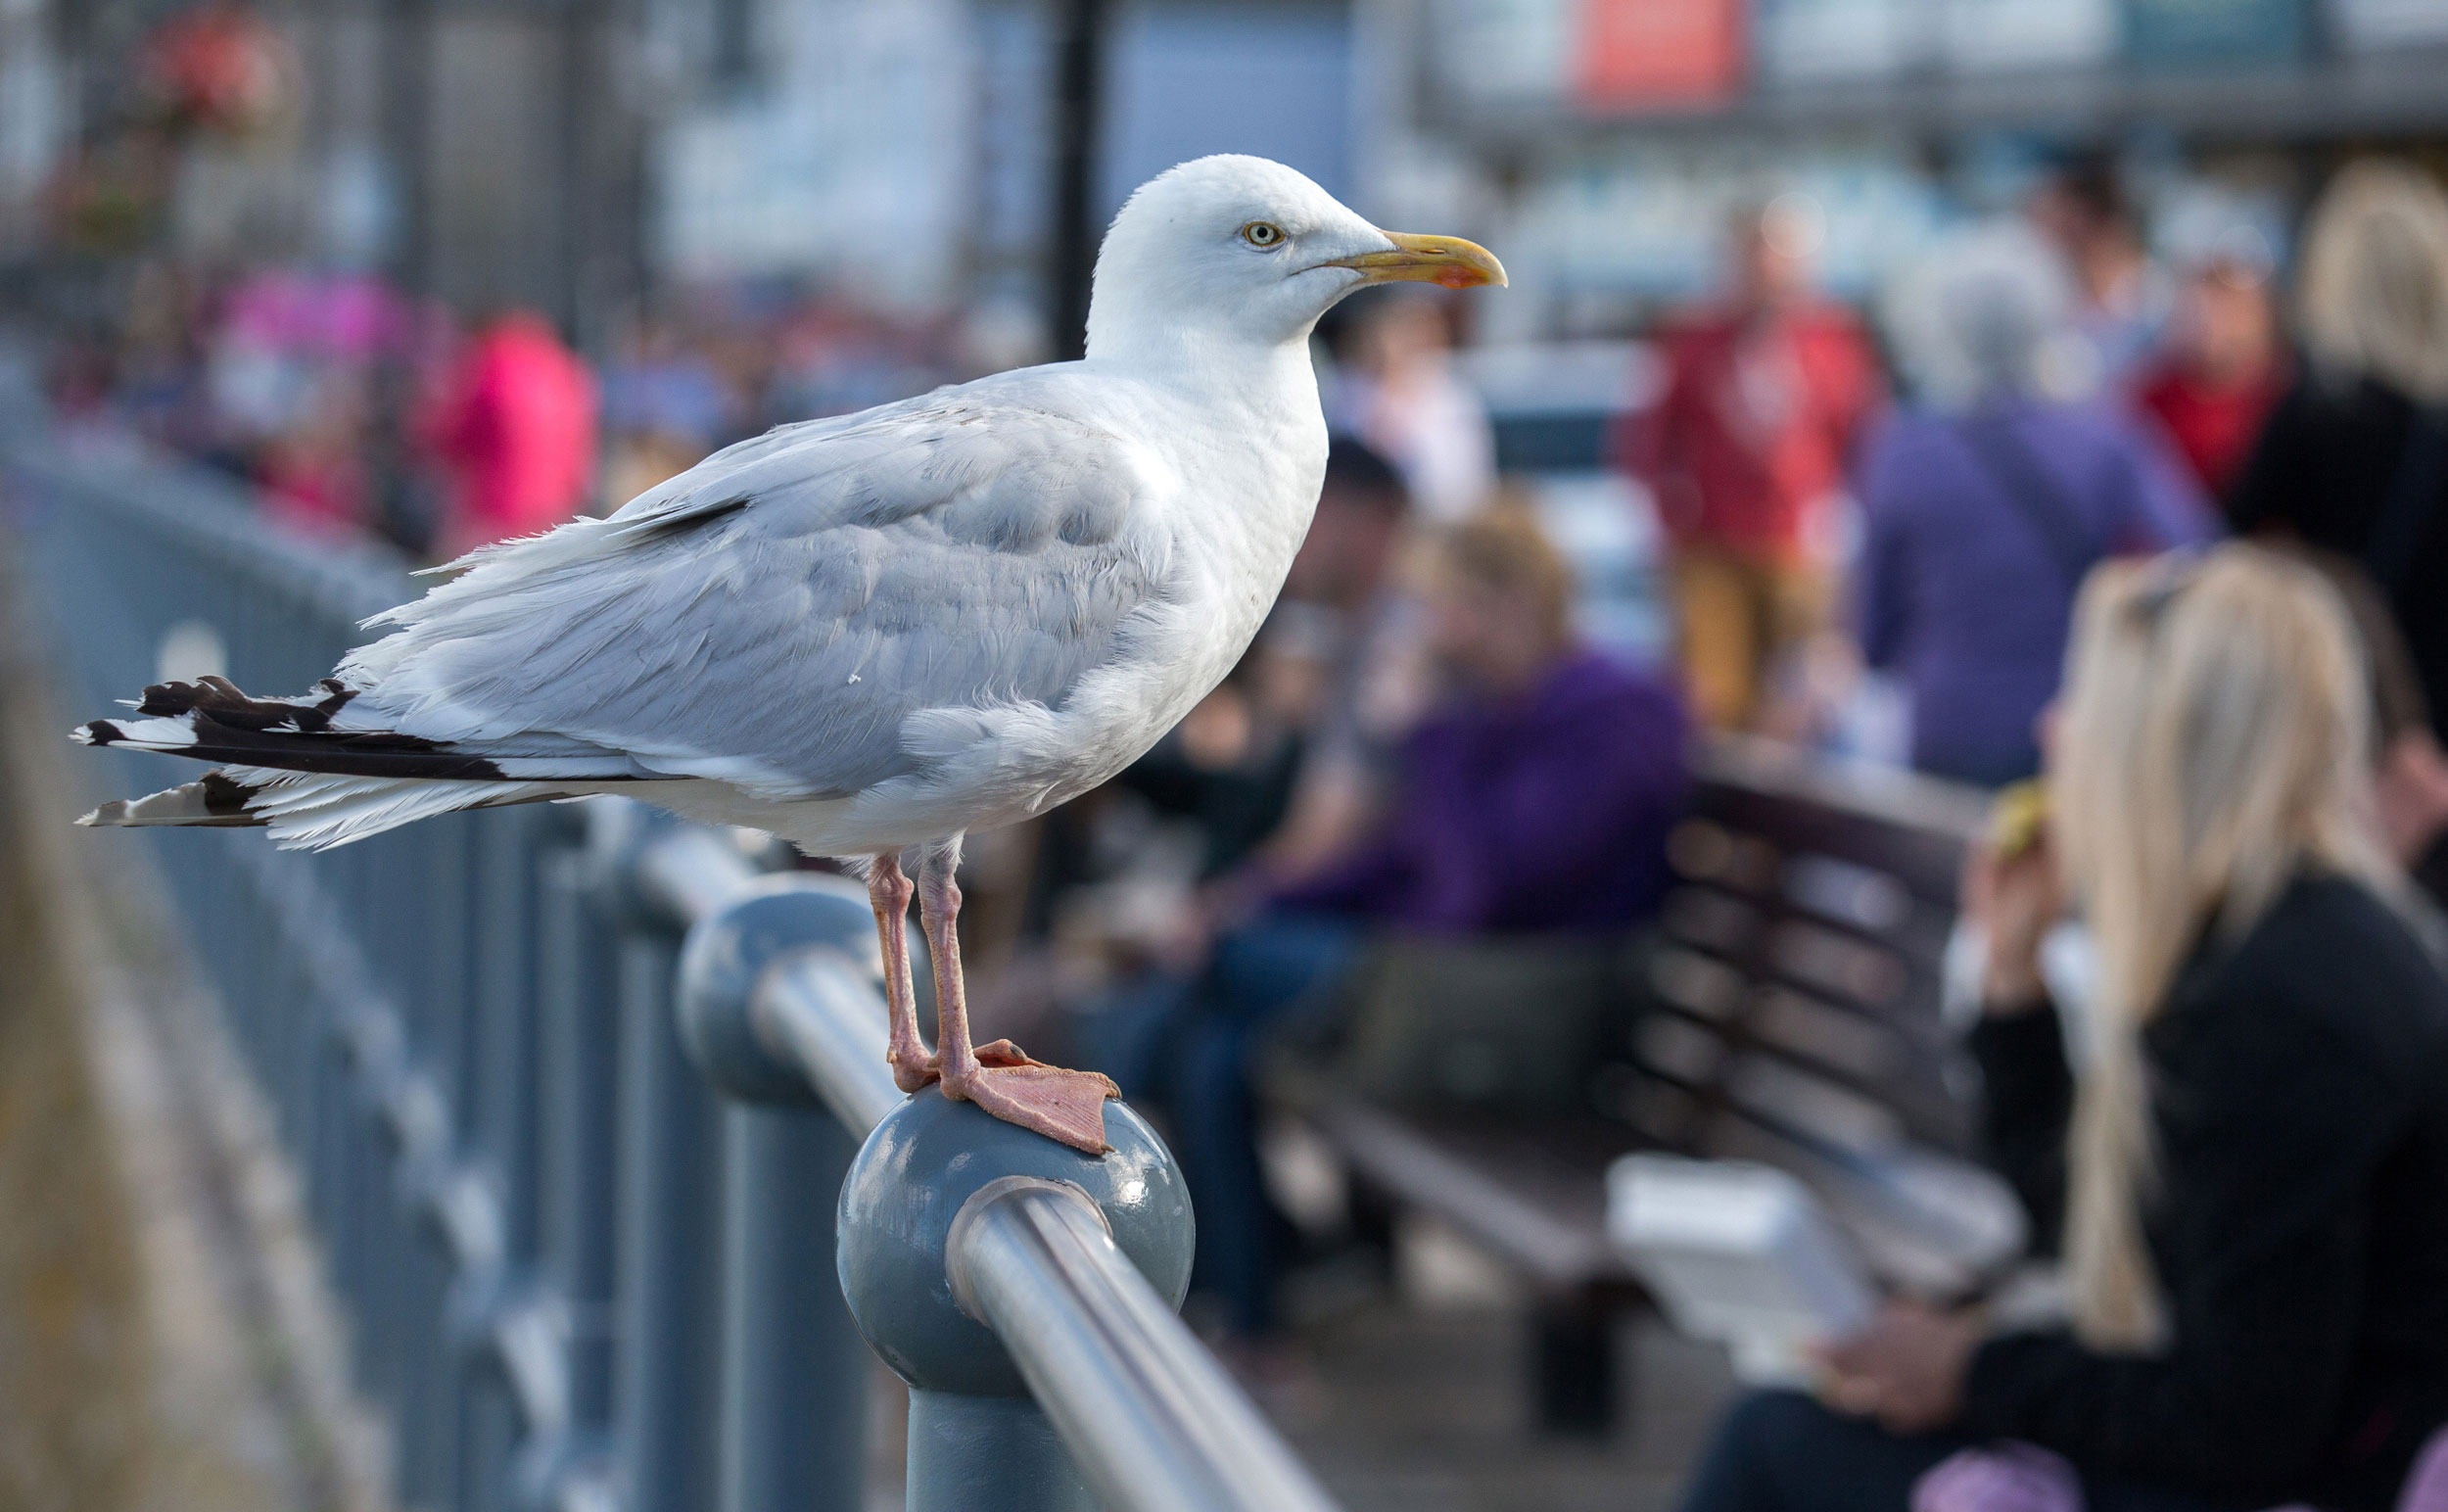 Seagulls are more likely to go after food humans have touched